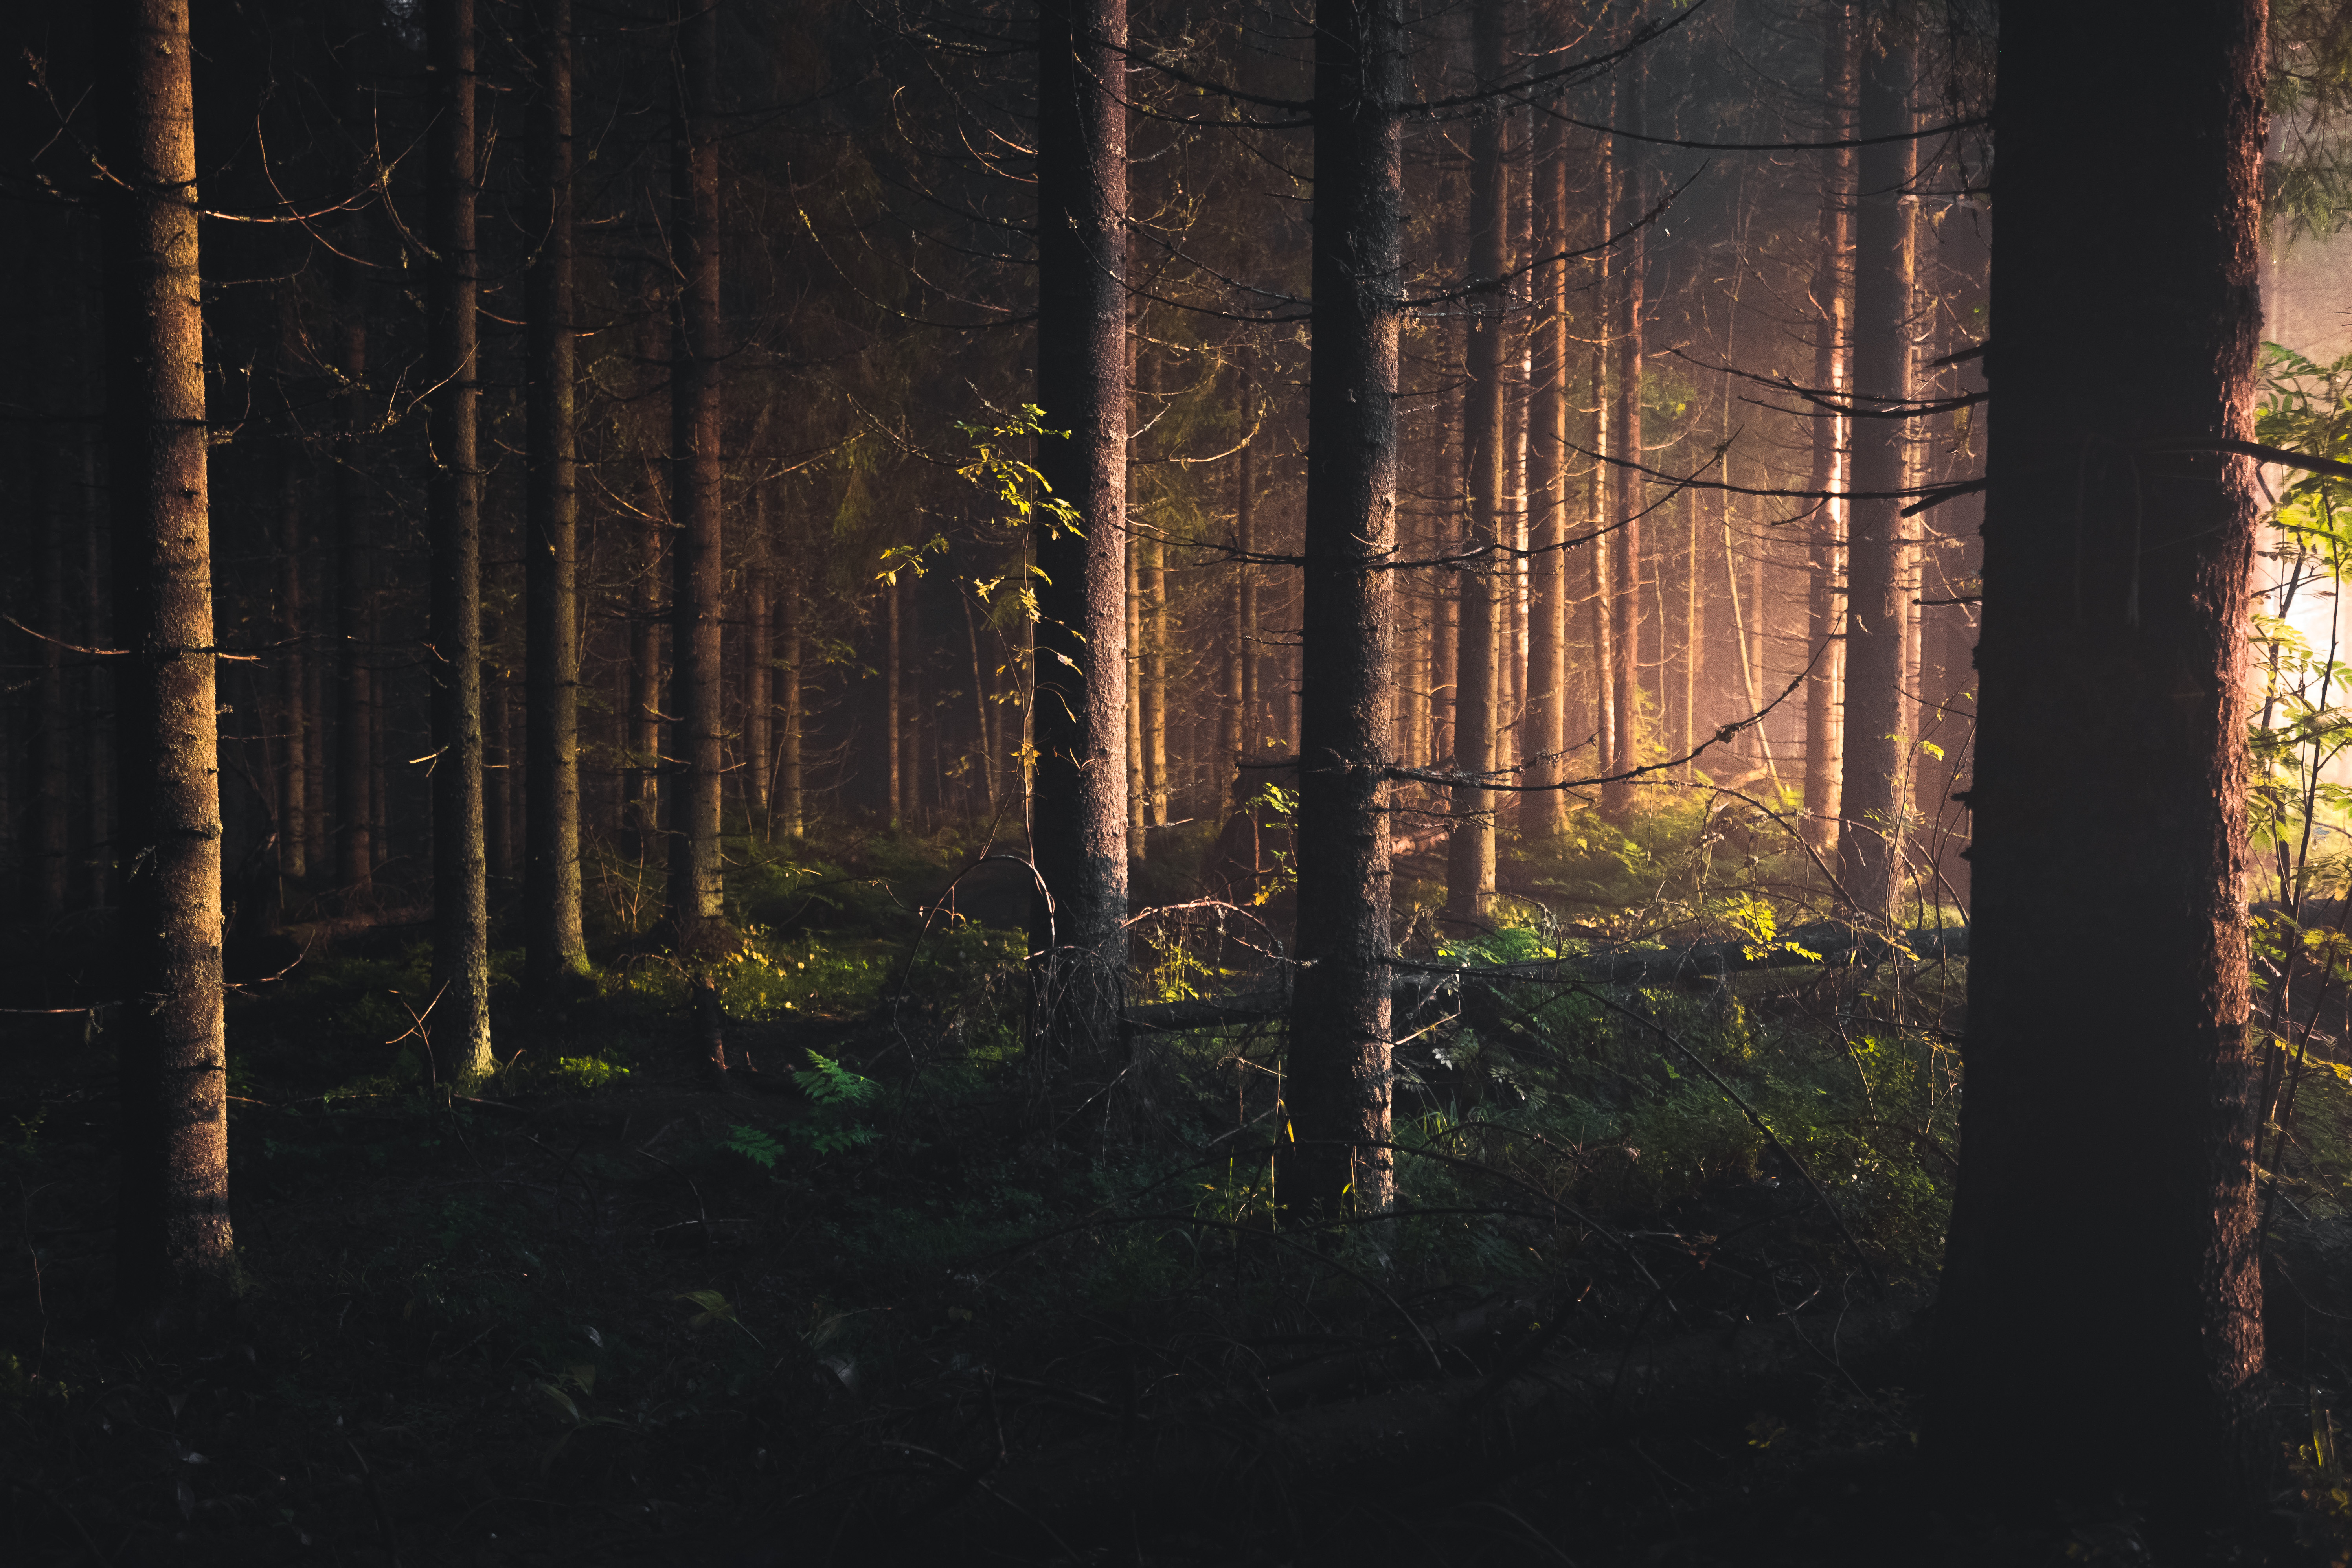 I took this image at midnight in a pitch black forest. The light coming from street lights illuminated the trees through the mist and created a dreamy scene. Find me on Instagram @niiloi